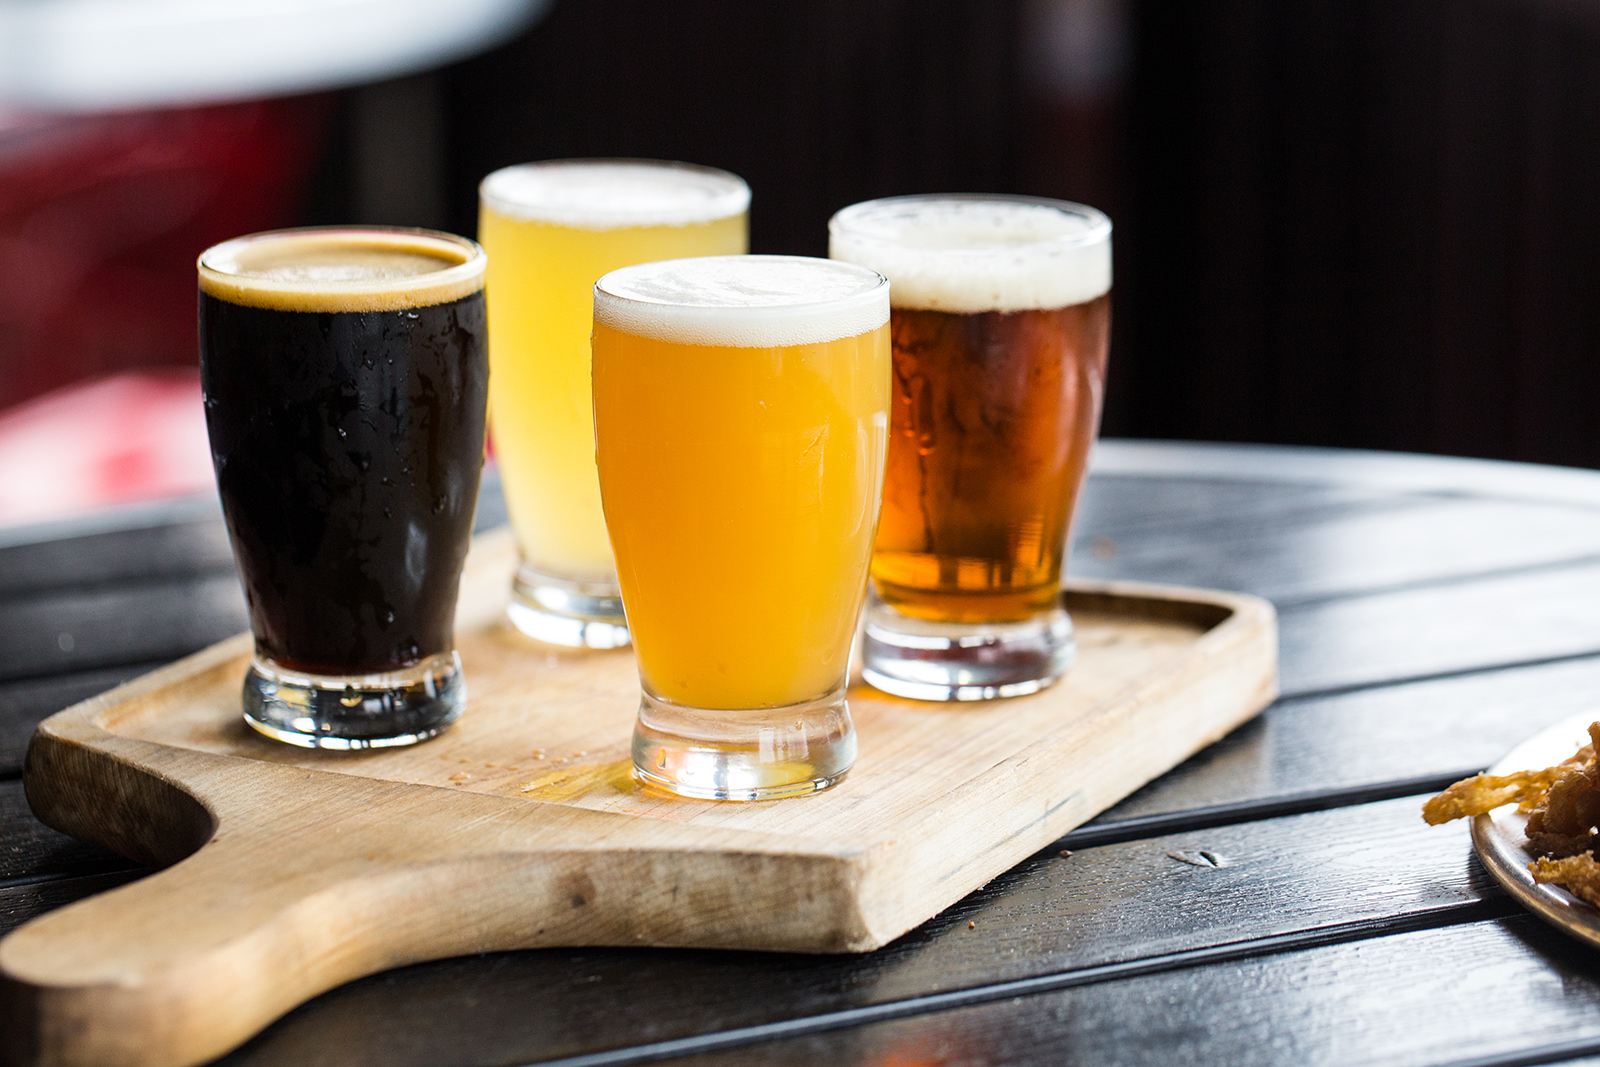 See what's on tap! - Here at Kreggers we switch out our kegs daily in order to have a variety of craft and local beers for our customers.